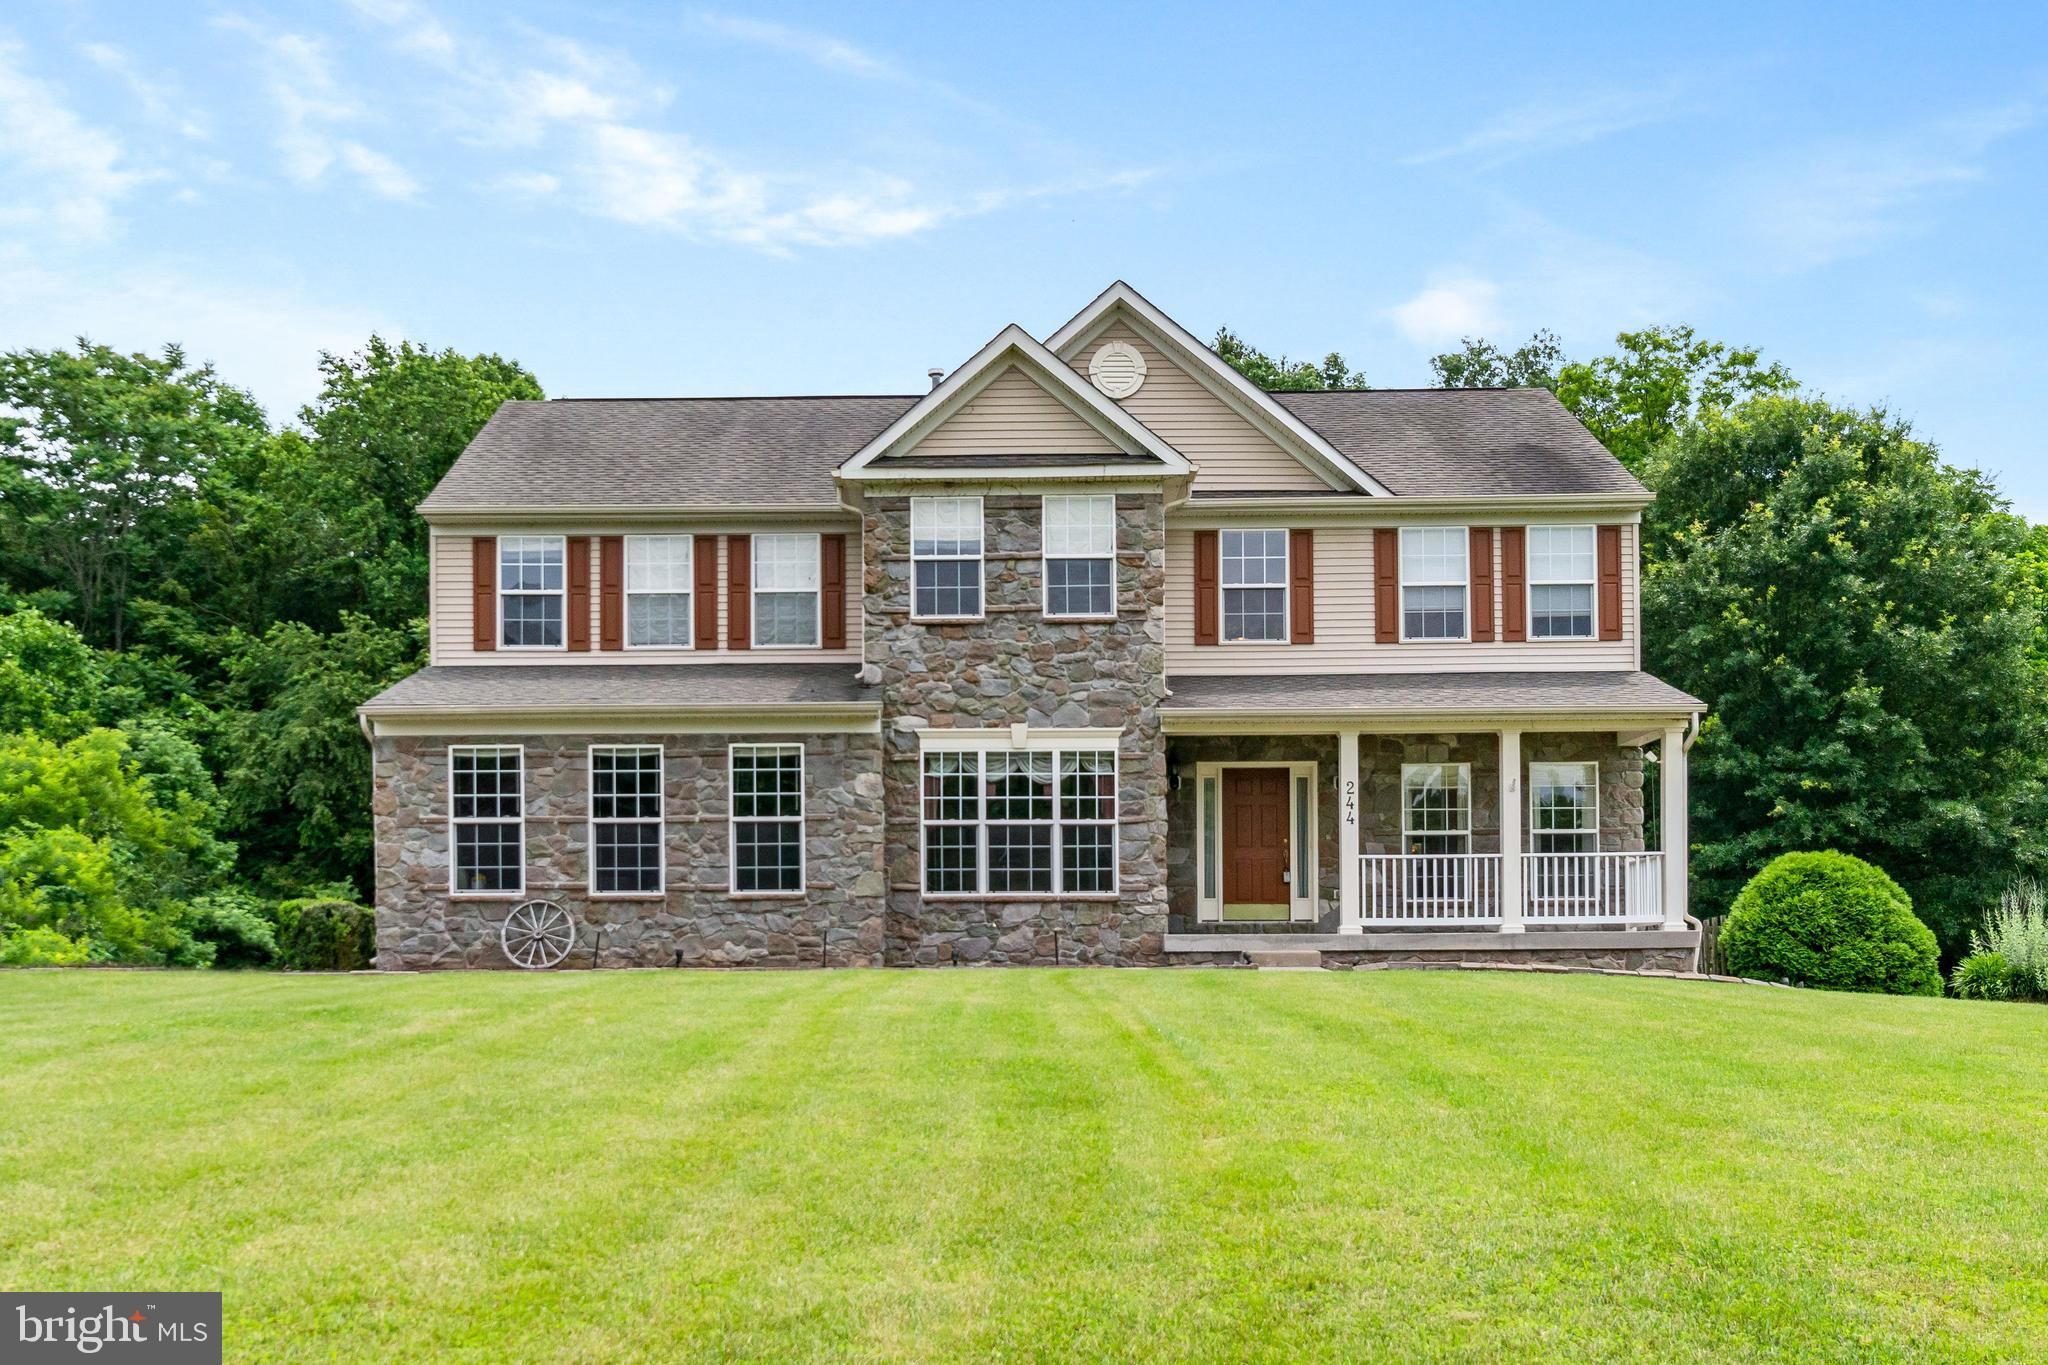 Truly magnificent at nearly 4,500 square feet of finished living space, this 4 bedroom  3 1/2  bath